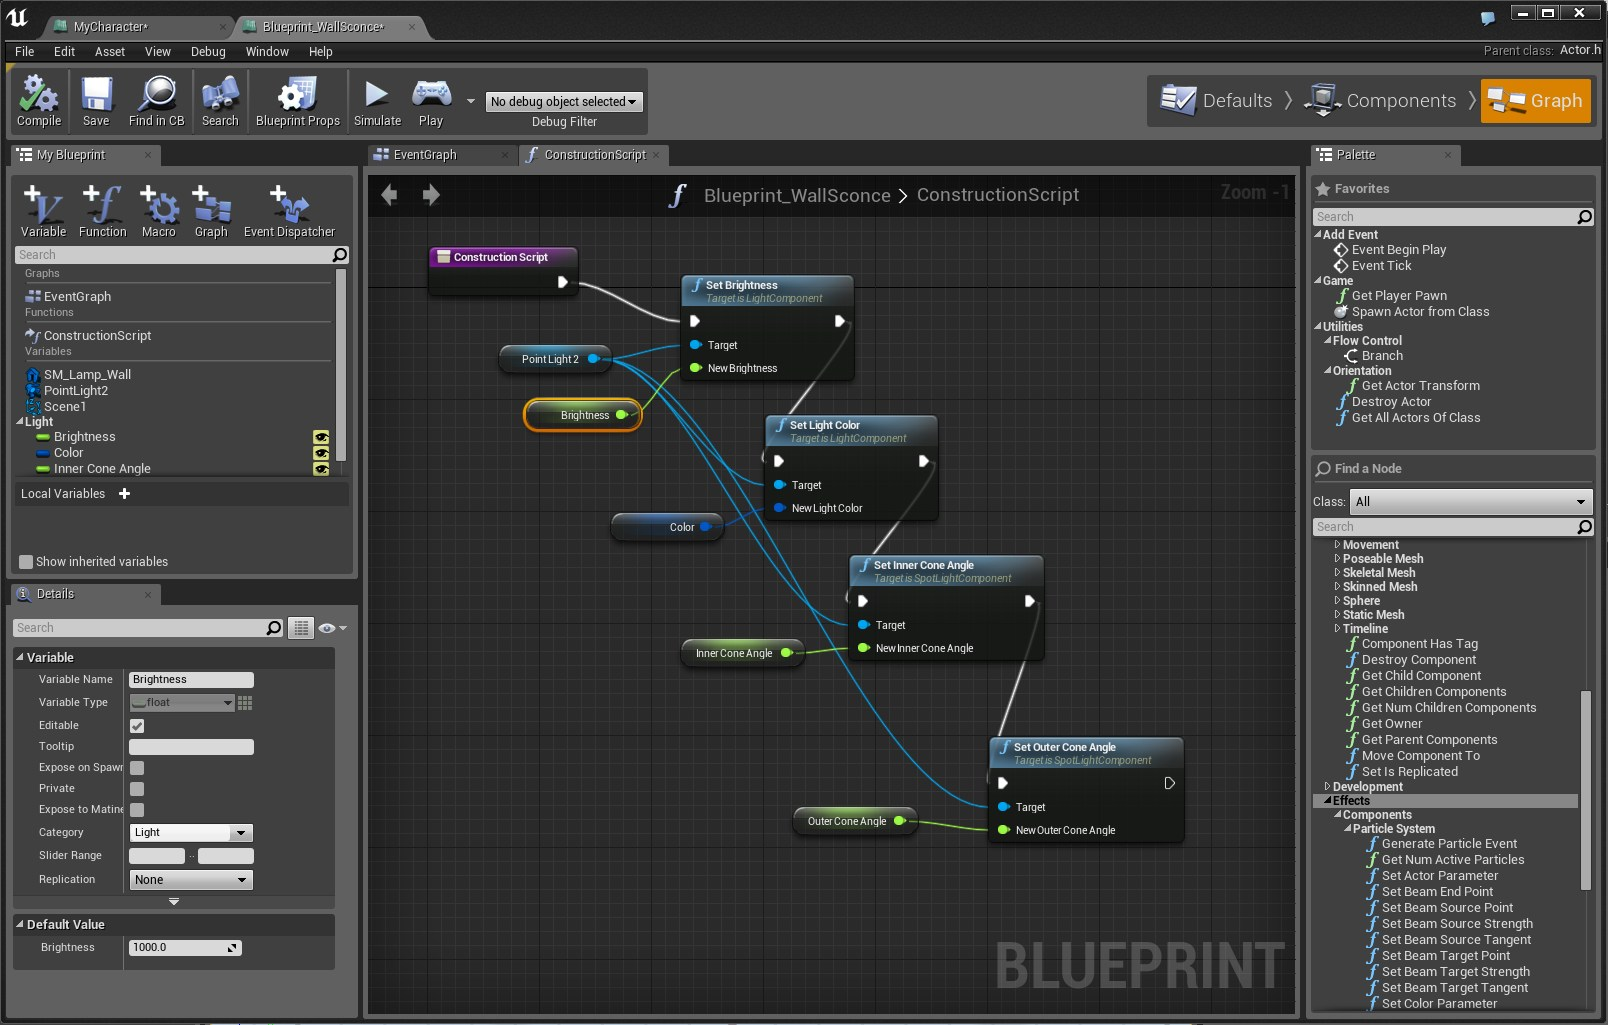 Blueprint editor image unreal engine 4 games indie db add media report rss blueprint editor view original malvernweather Images